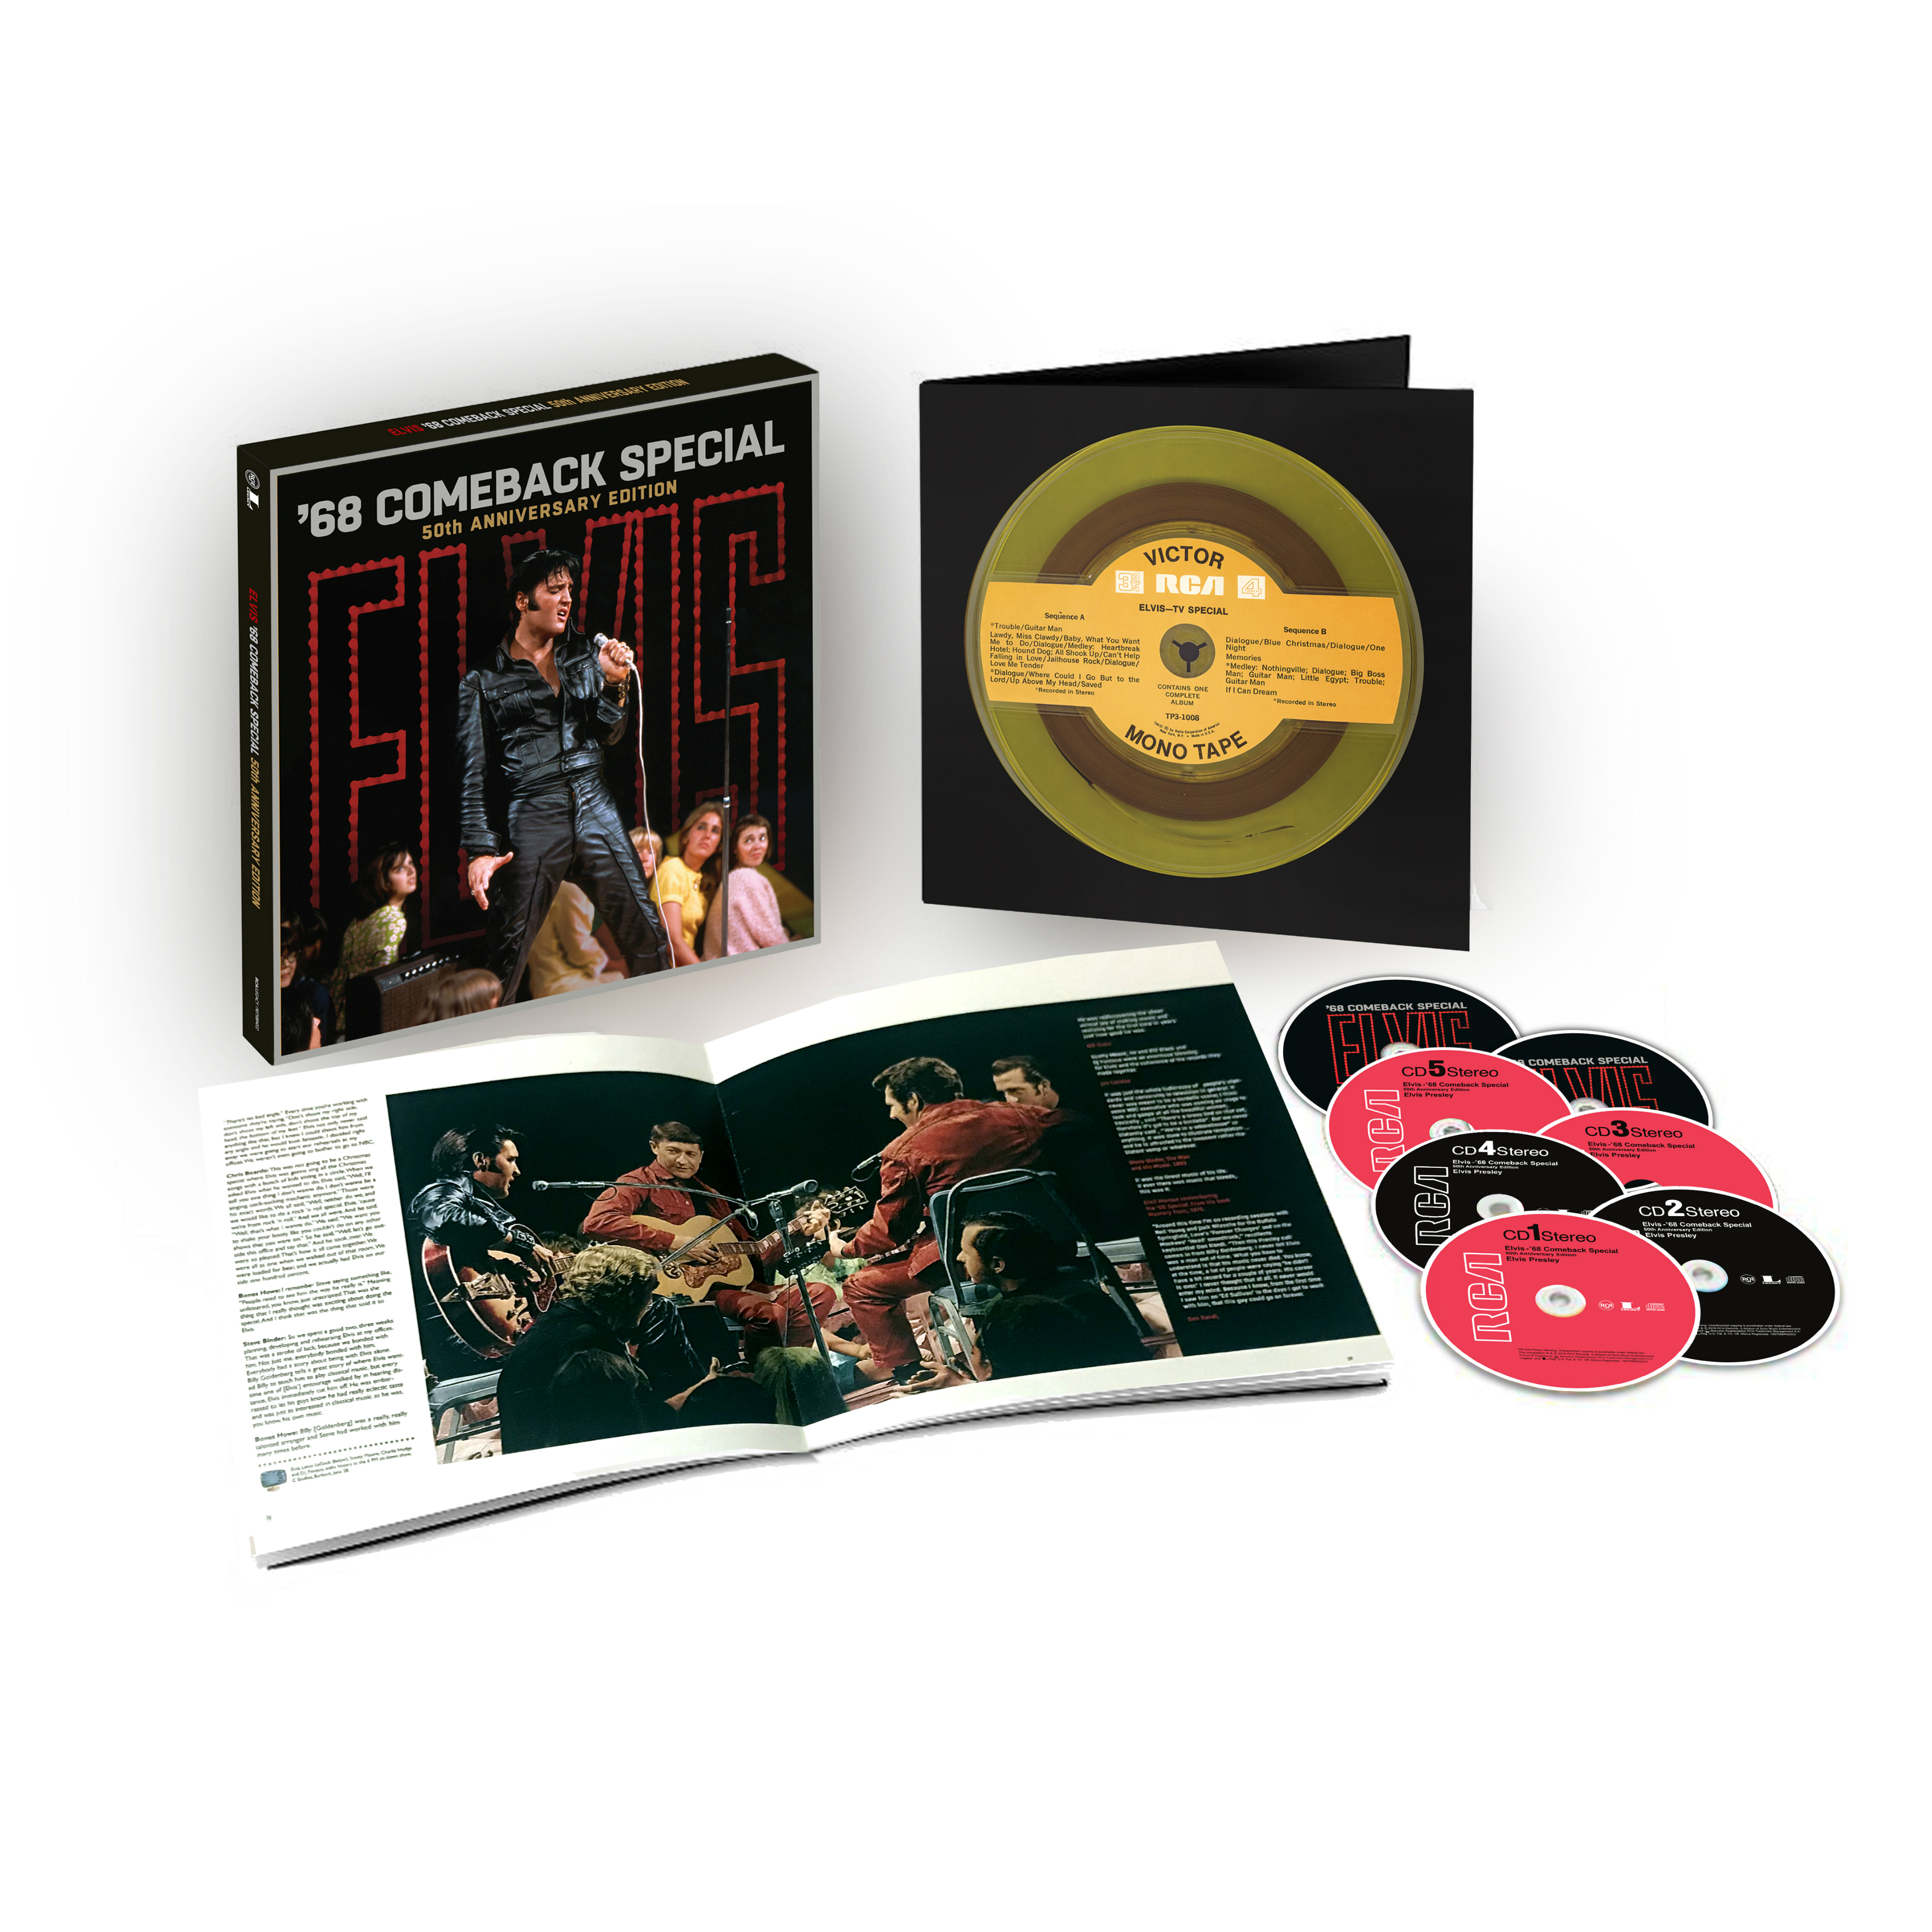 '68 Comeback Special - 50th Anniversary Edition CD Box Set